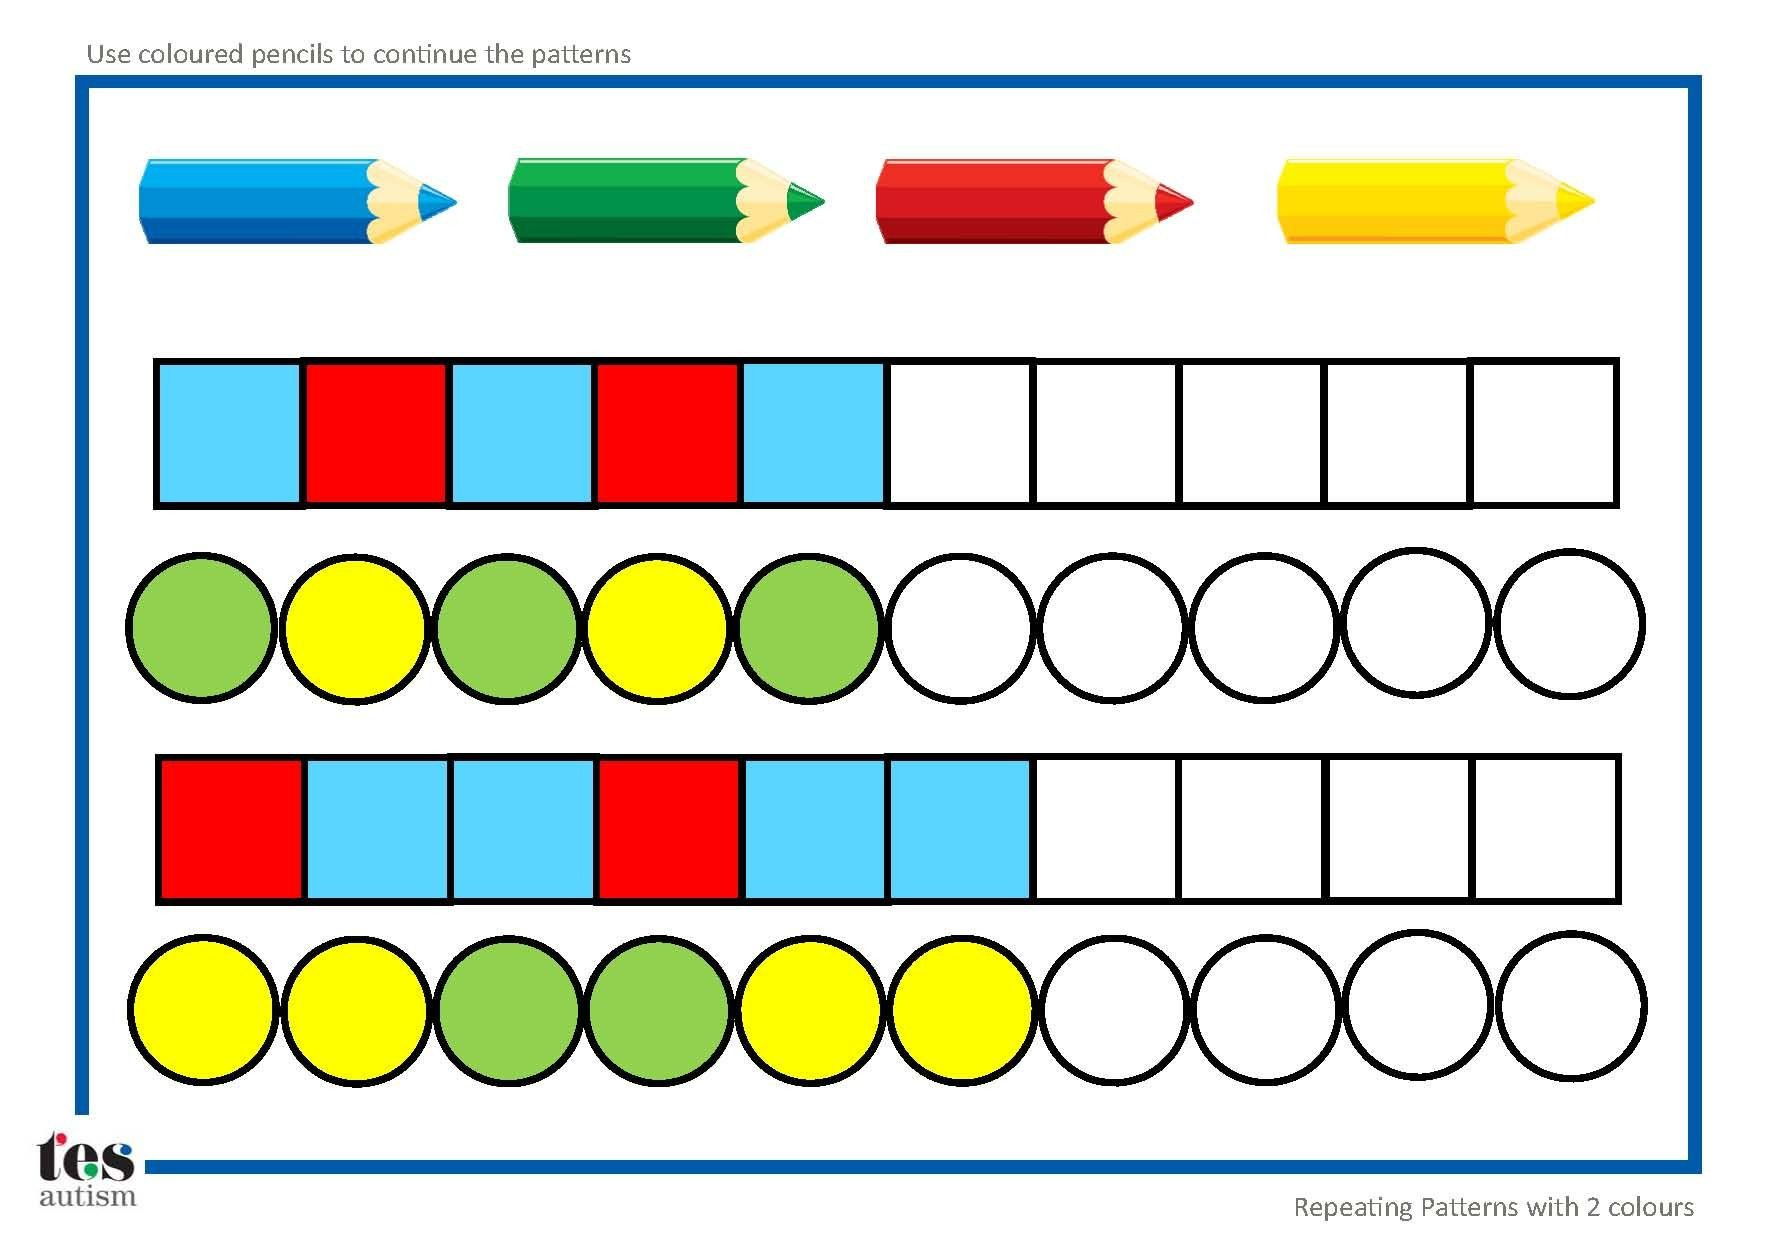 Repeating Patterns Worksheets Repeating Patterns with 2 Colours 4 Worksheet Activities